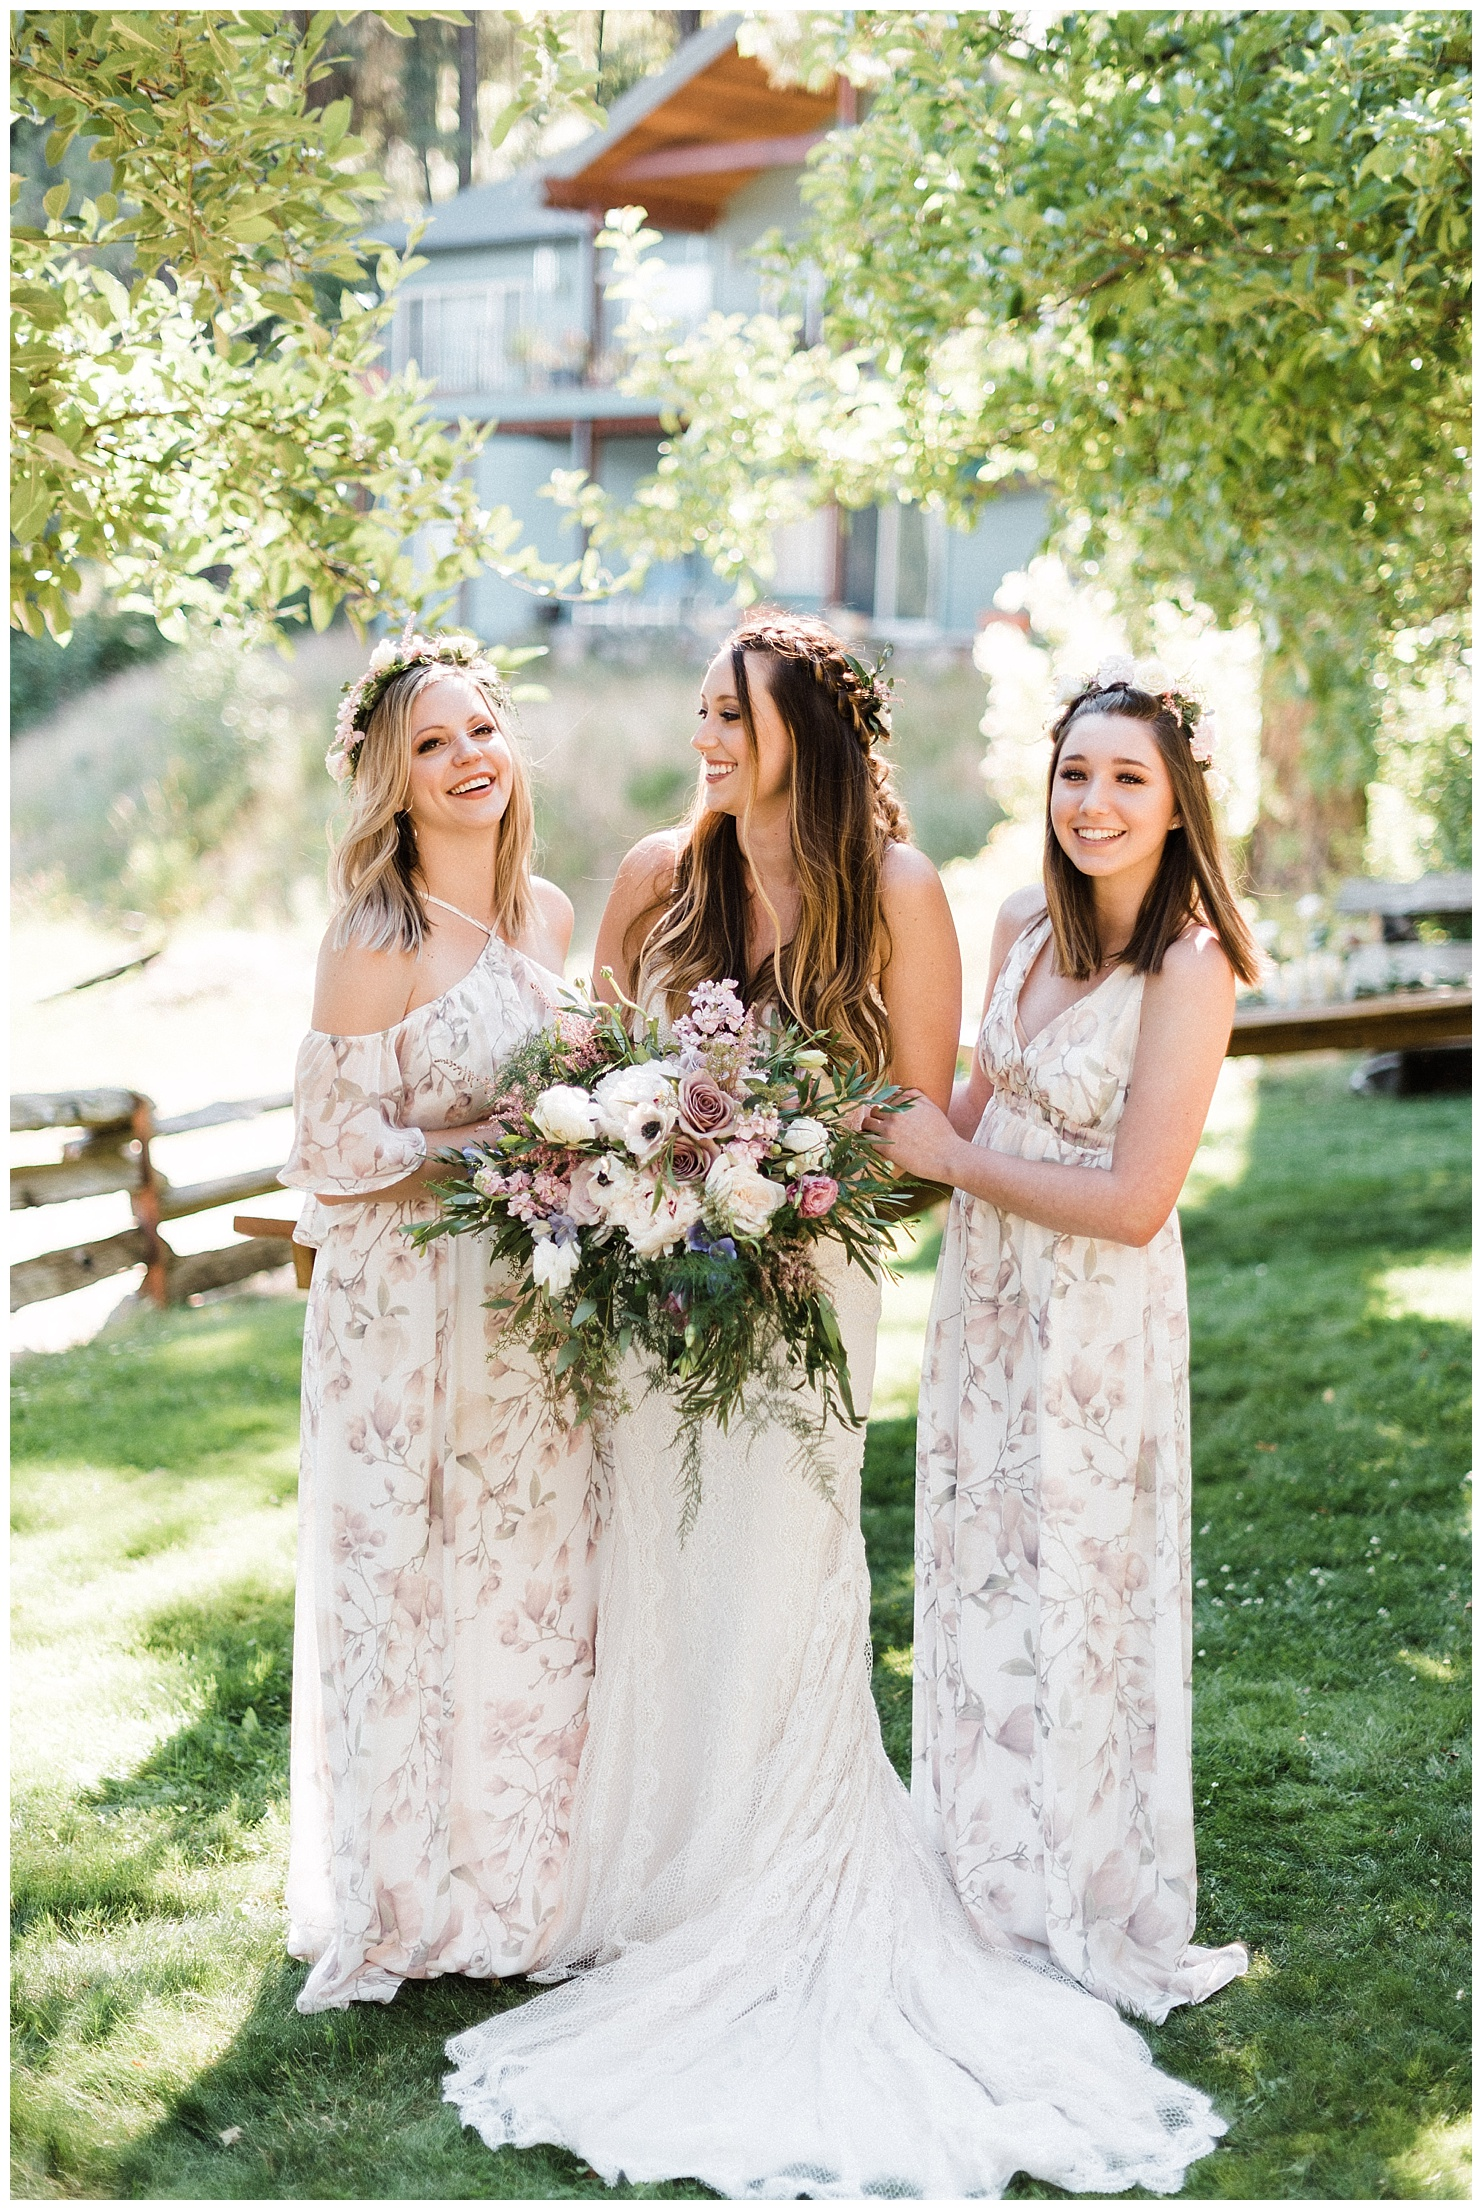 Photo of a bride & her bridesmaids in a backyard, Lake Coeur d'Alene Wedding by Forthright Photo